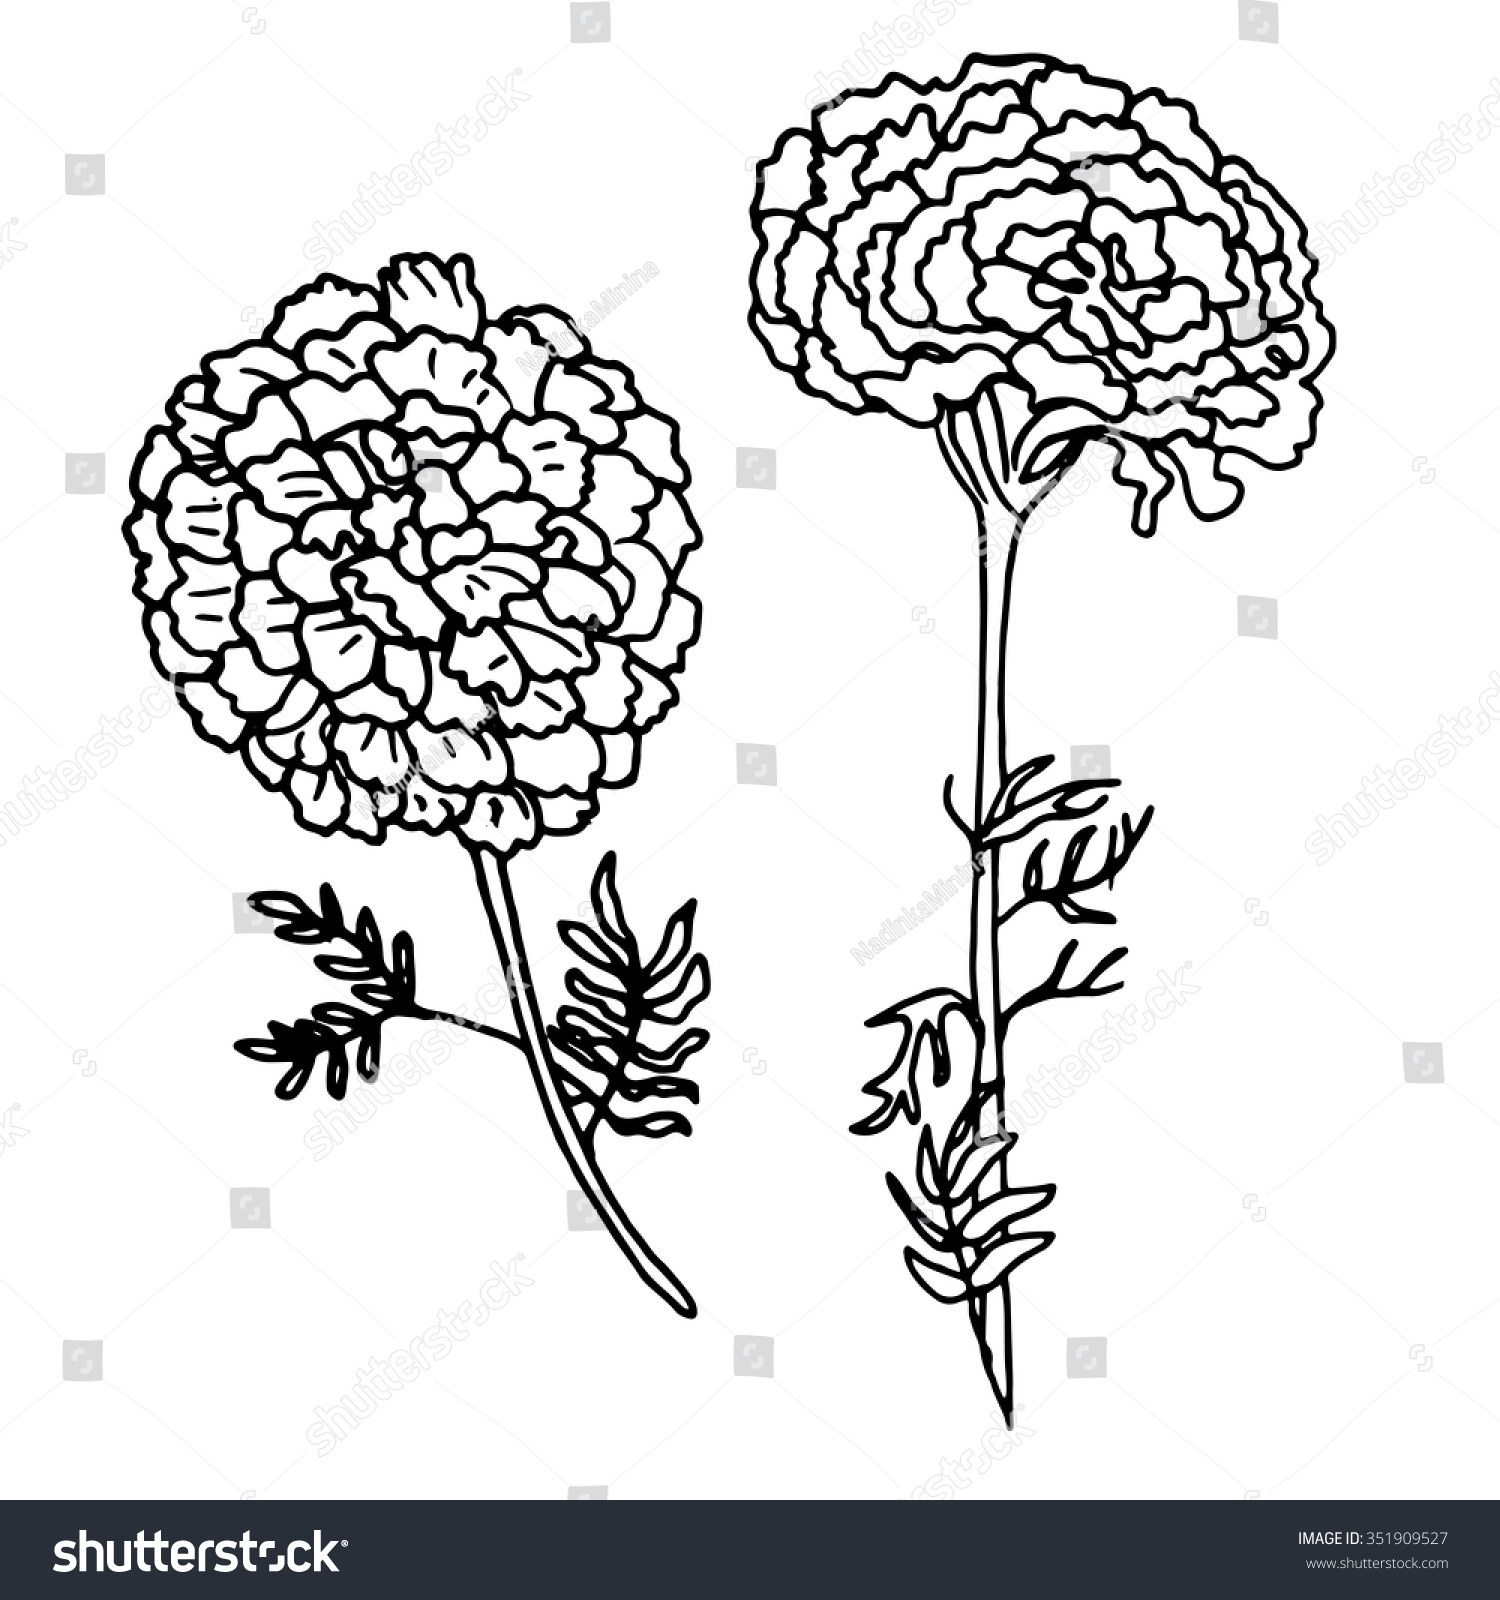 Vector Illustration Hand Drawn Marigold Isolated Stock ...